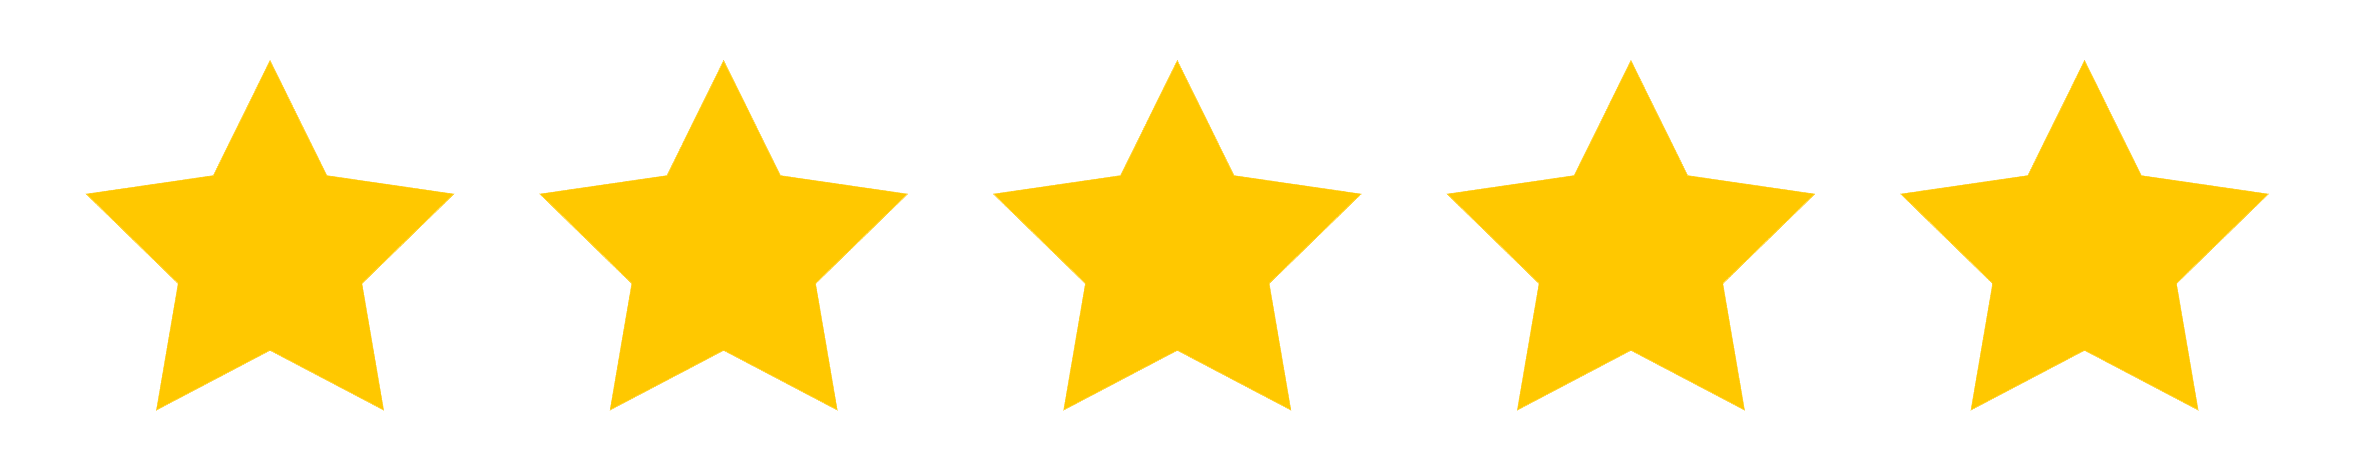 Reviews star rating for A-1 Self Storage in Vista, California